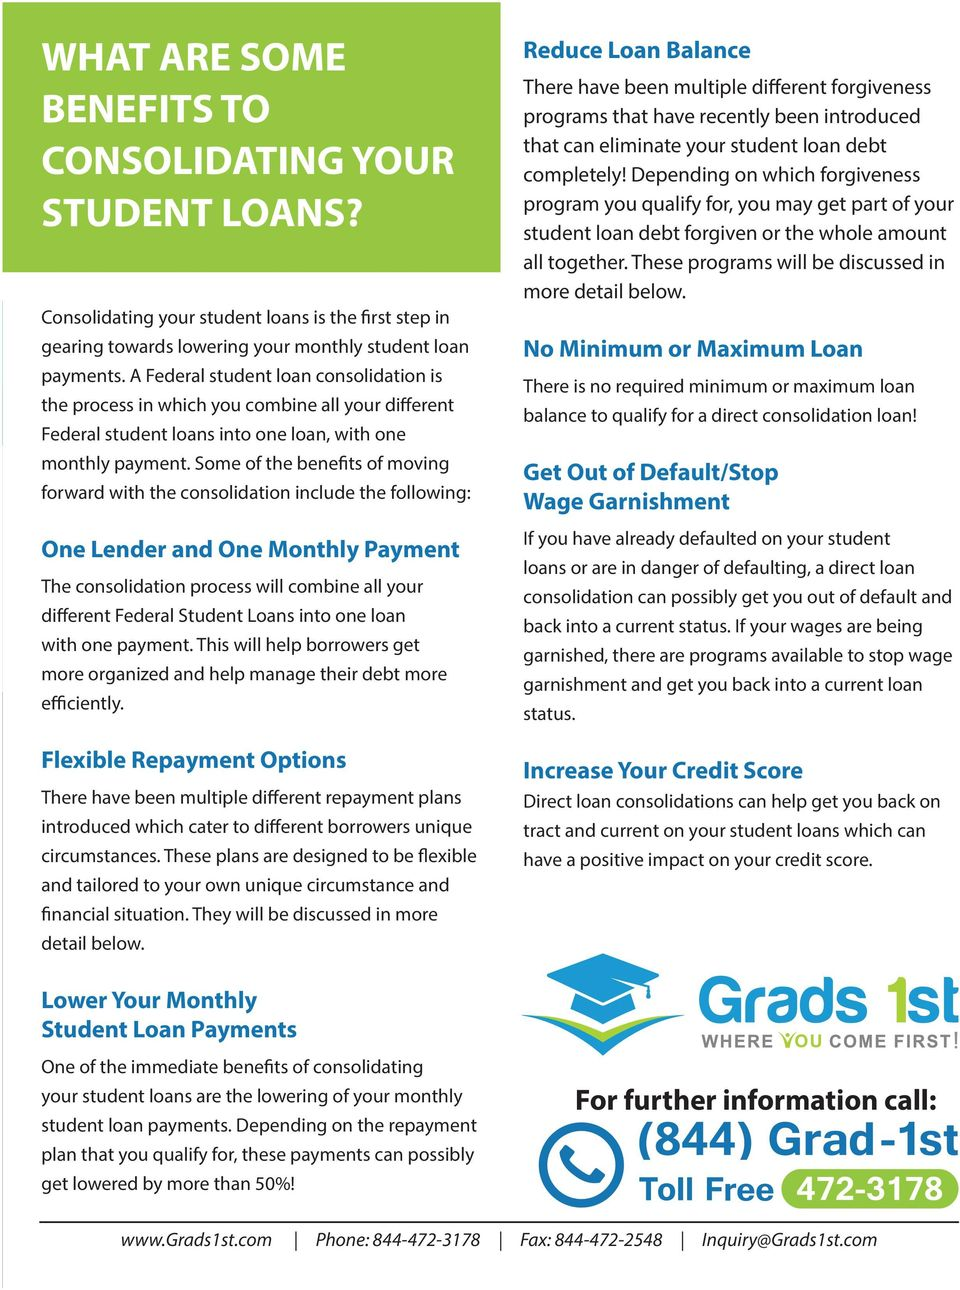 Some of the benefits of moving forward with the consolidation include the following: One Lender and One Monthly Payment The consolidation process will combine all your different Federal Student Loans